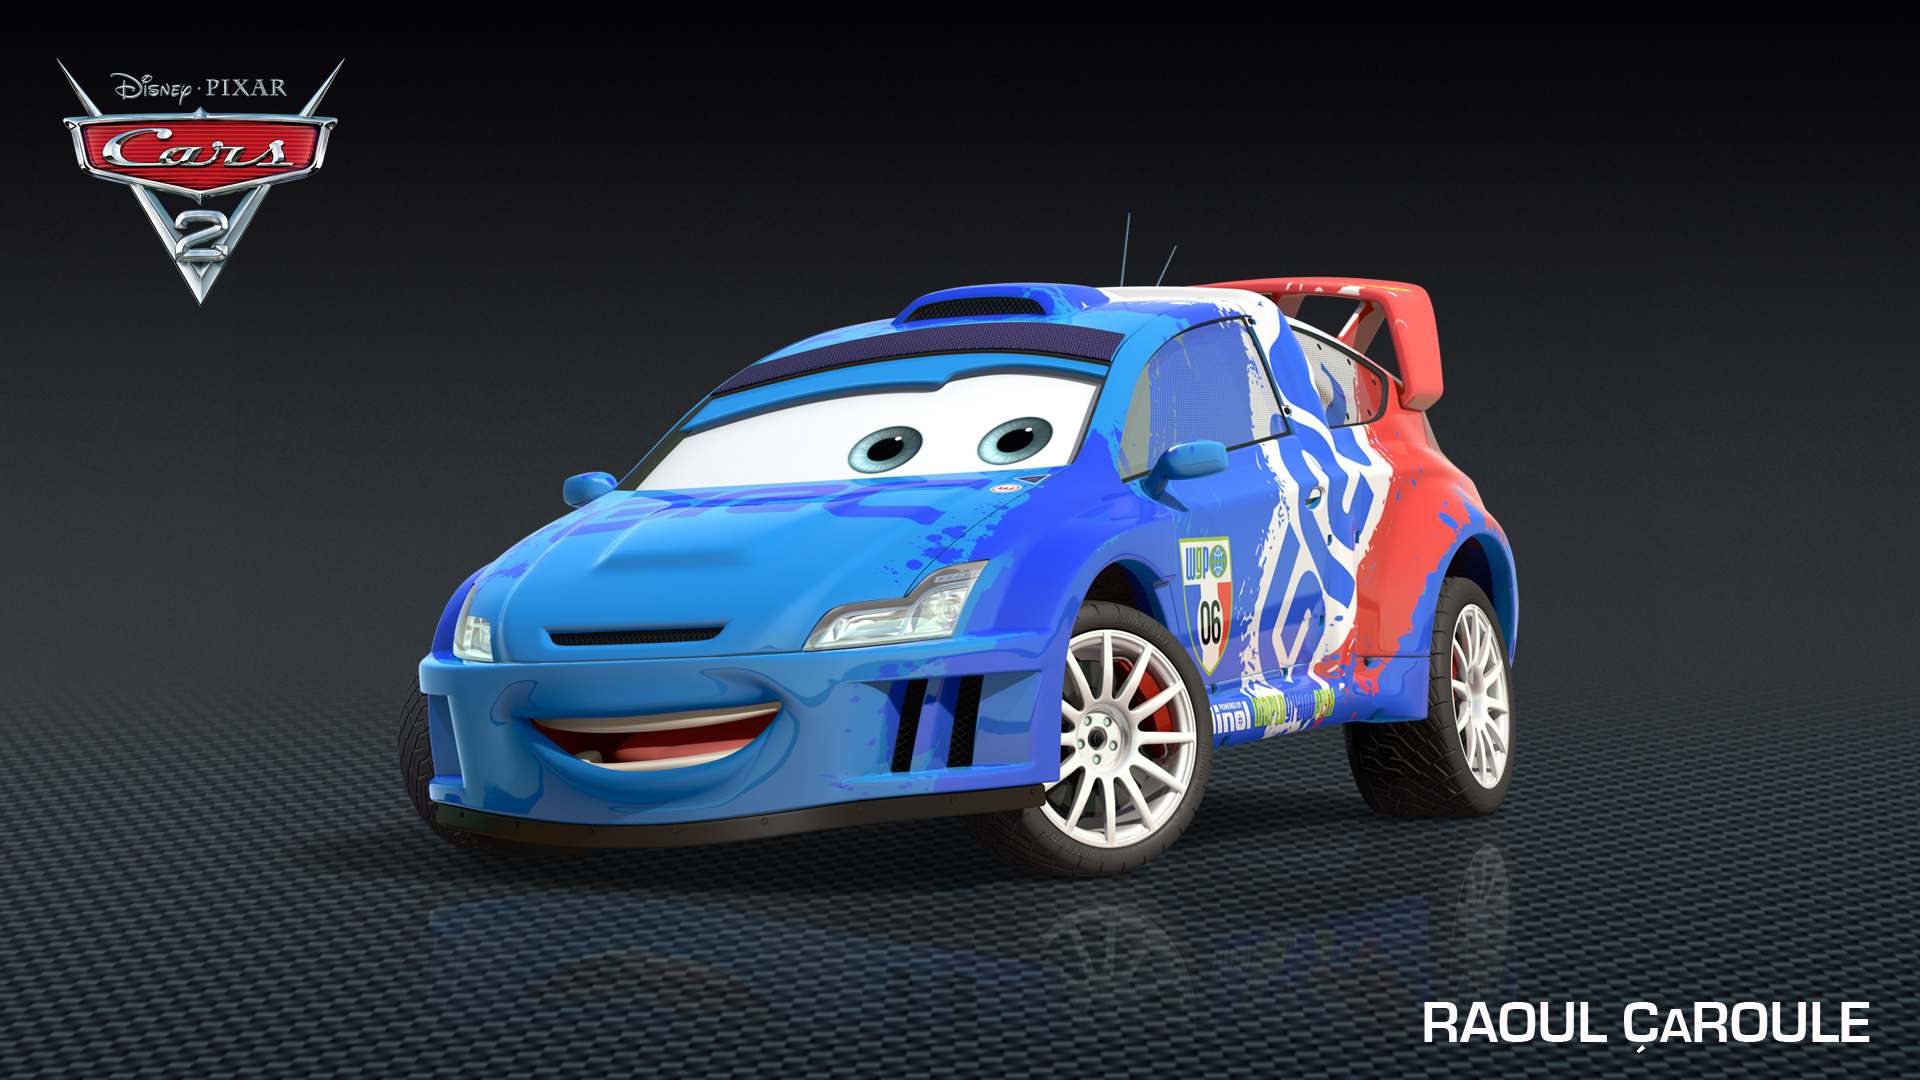 Raoul ÇaRoule Drives Into Cars 2